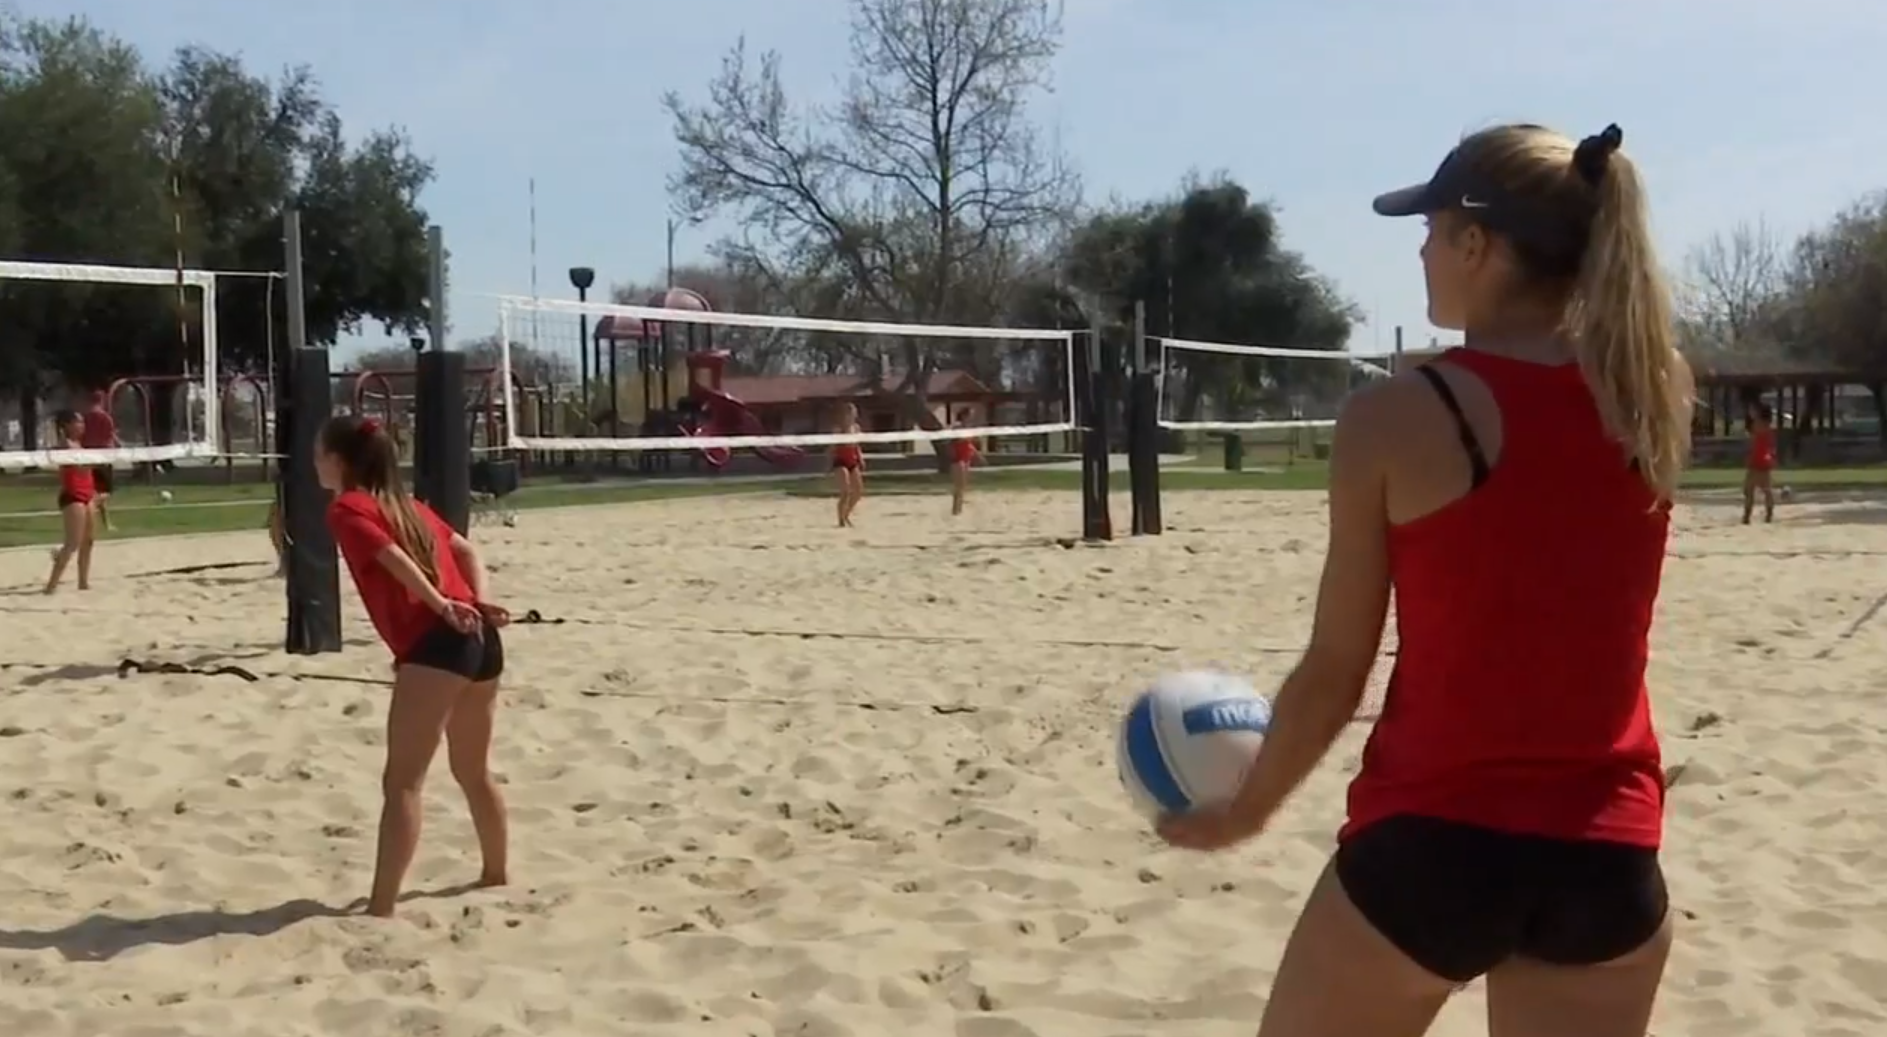 Read More About Fresno City College S Beach Volleyball Program In This Article By Abc30 Action News Https Abc30 Com 5236164 Fresno City City College Fresno